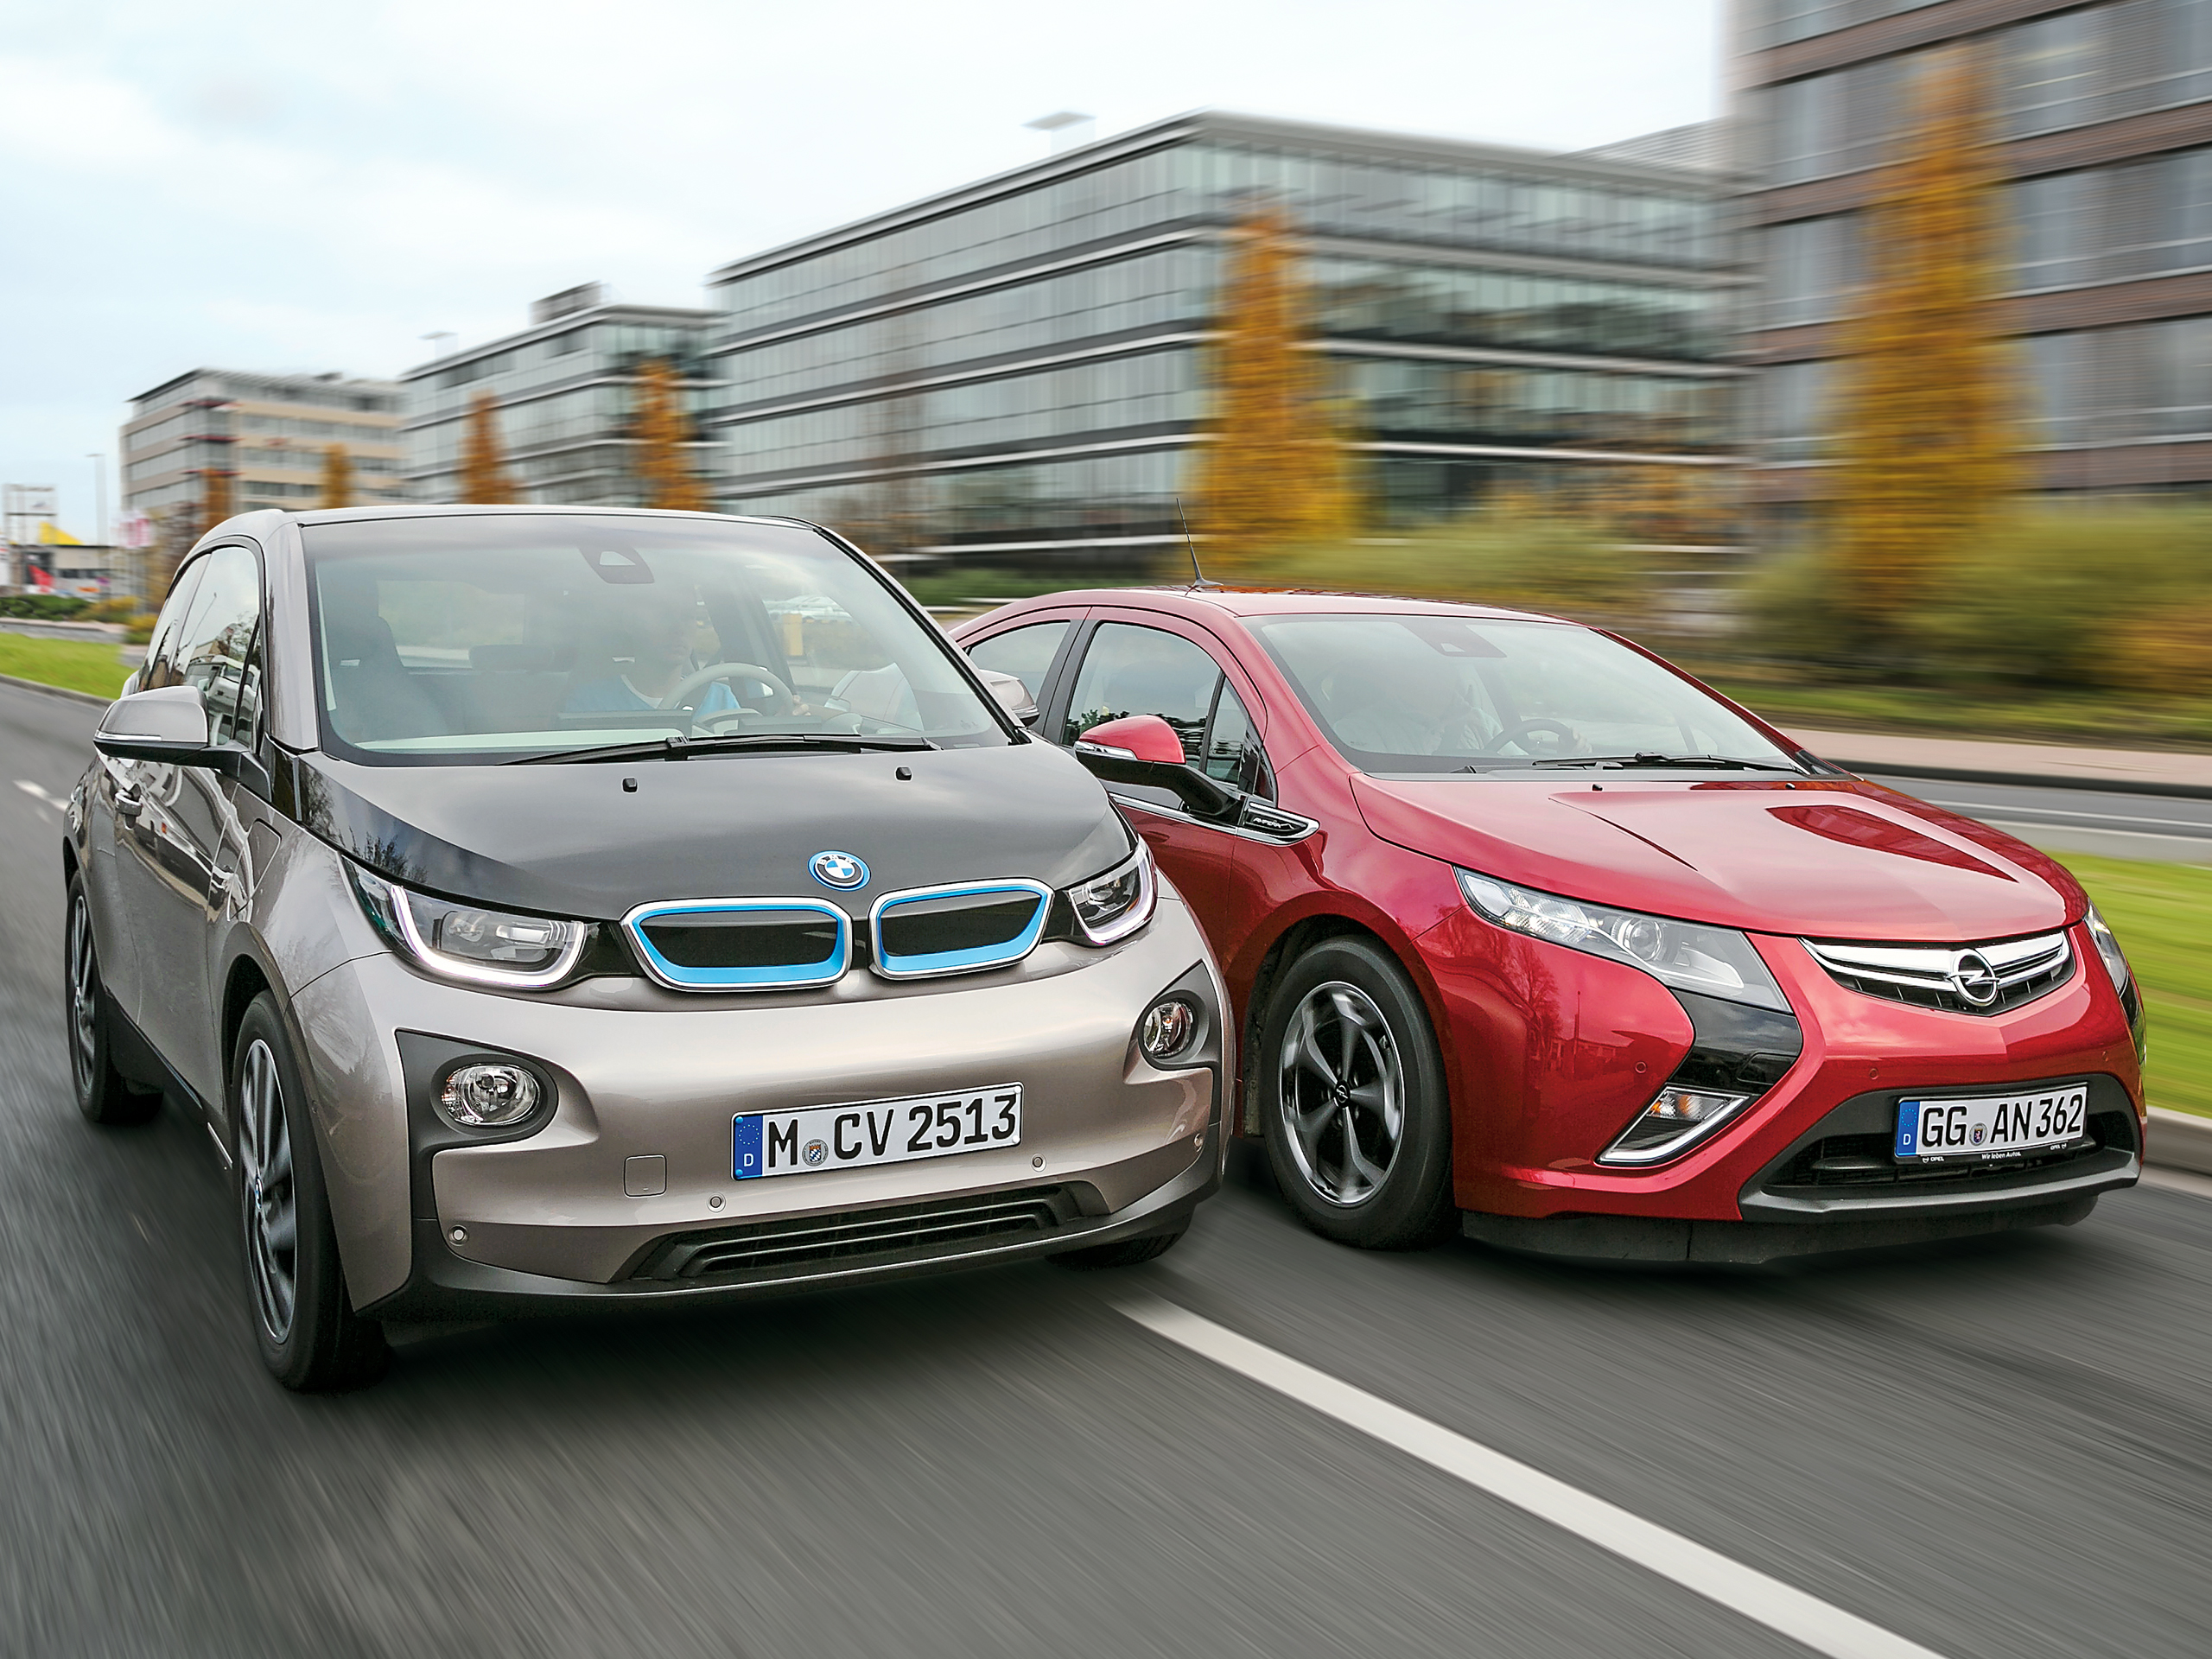 bmw i3 vs opel ampera vergleichstest der elektroautos. Black Bedroom Furniture Sets. Home Design Ideas